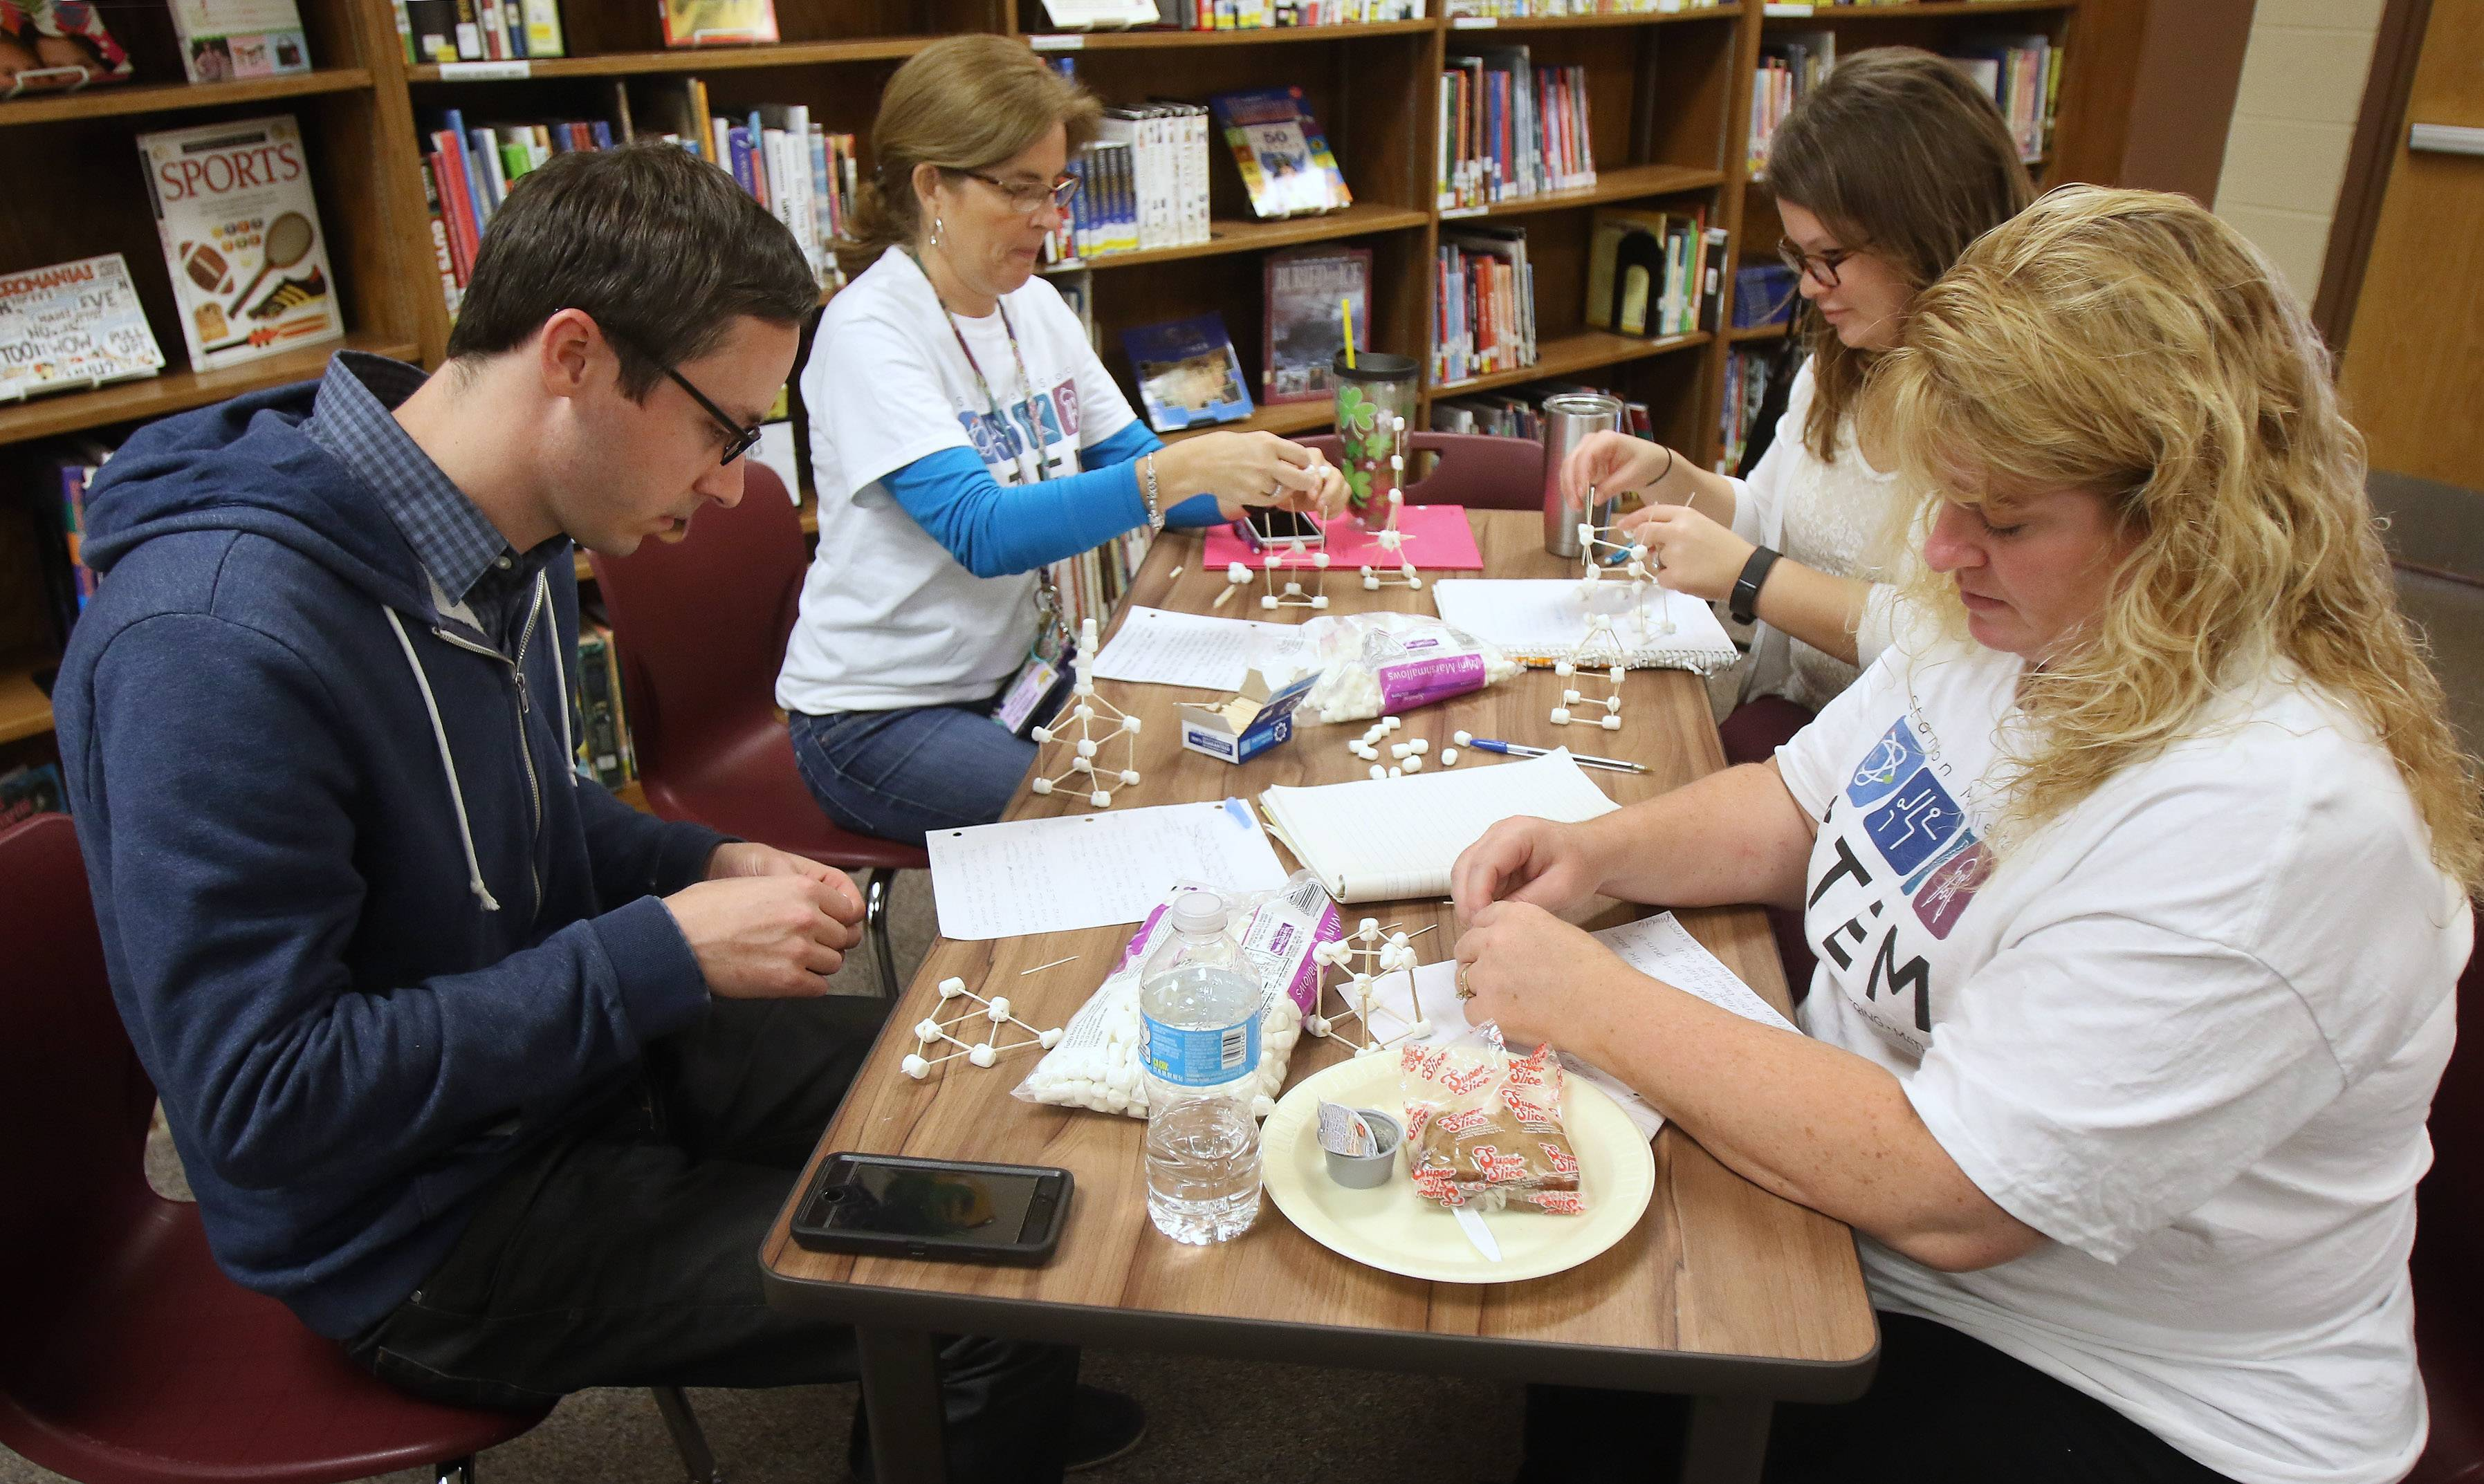 Teachers David Roat, left, Kathleen Winkiel, Donielle Williams and Colleen Hitzler build structures using toothpicks and marshmallows during a STEM workshop for teachers Monday at Stanton Elementary School in Fox Lake. Kristin Brynteson of Northern Illinois University's STEM program instructed the teachers with hands-on training and activities.